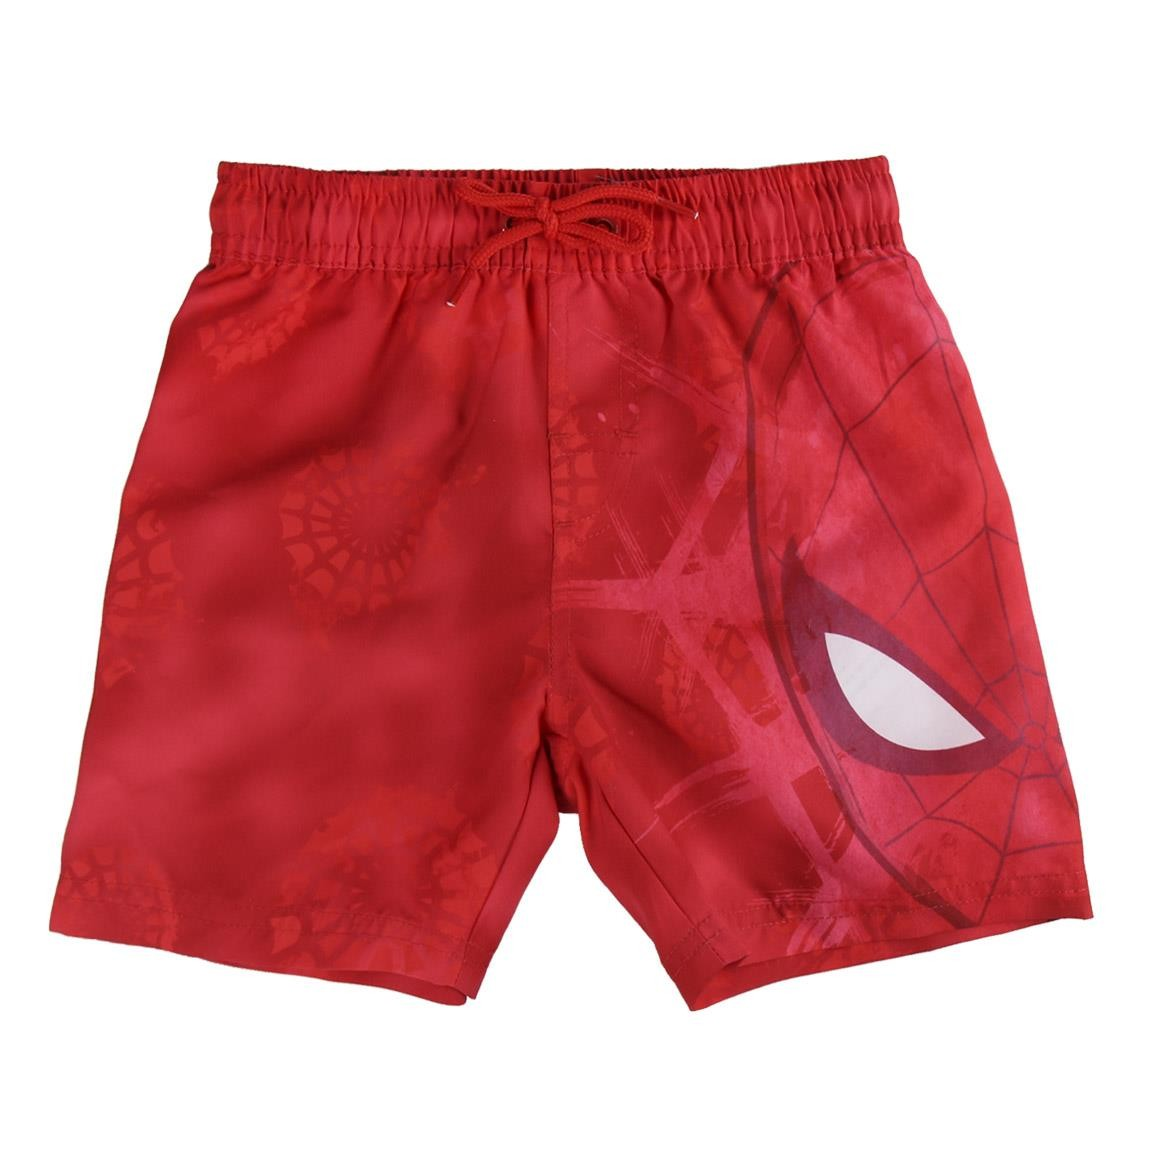 Costume boxer Spiderman